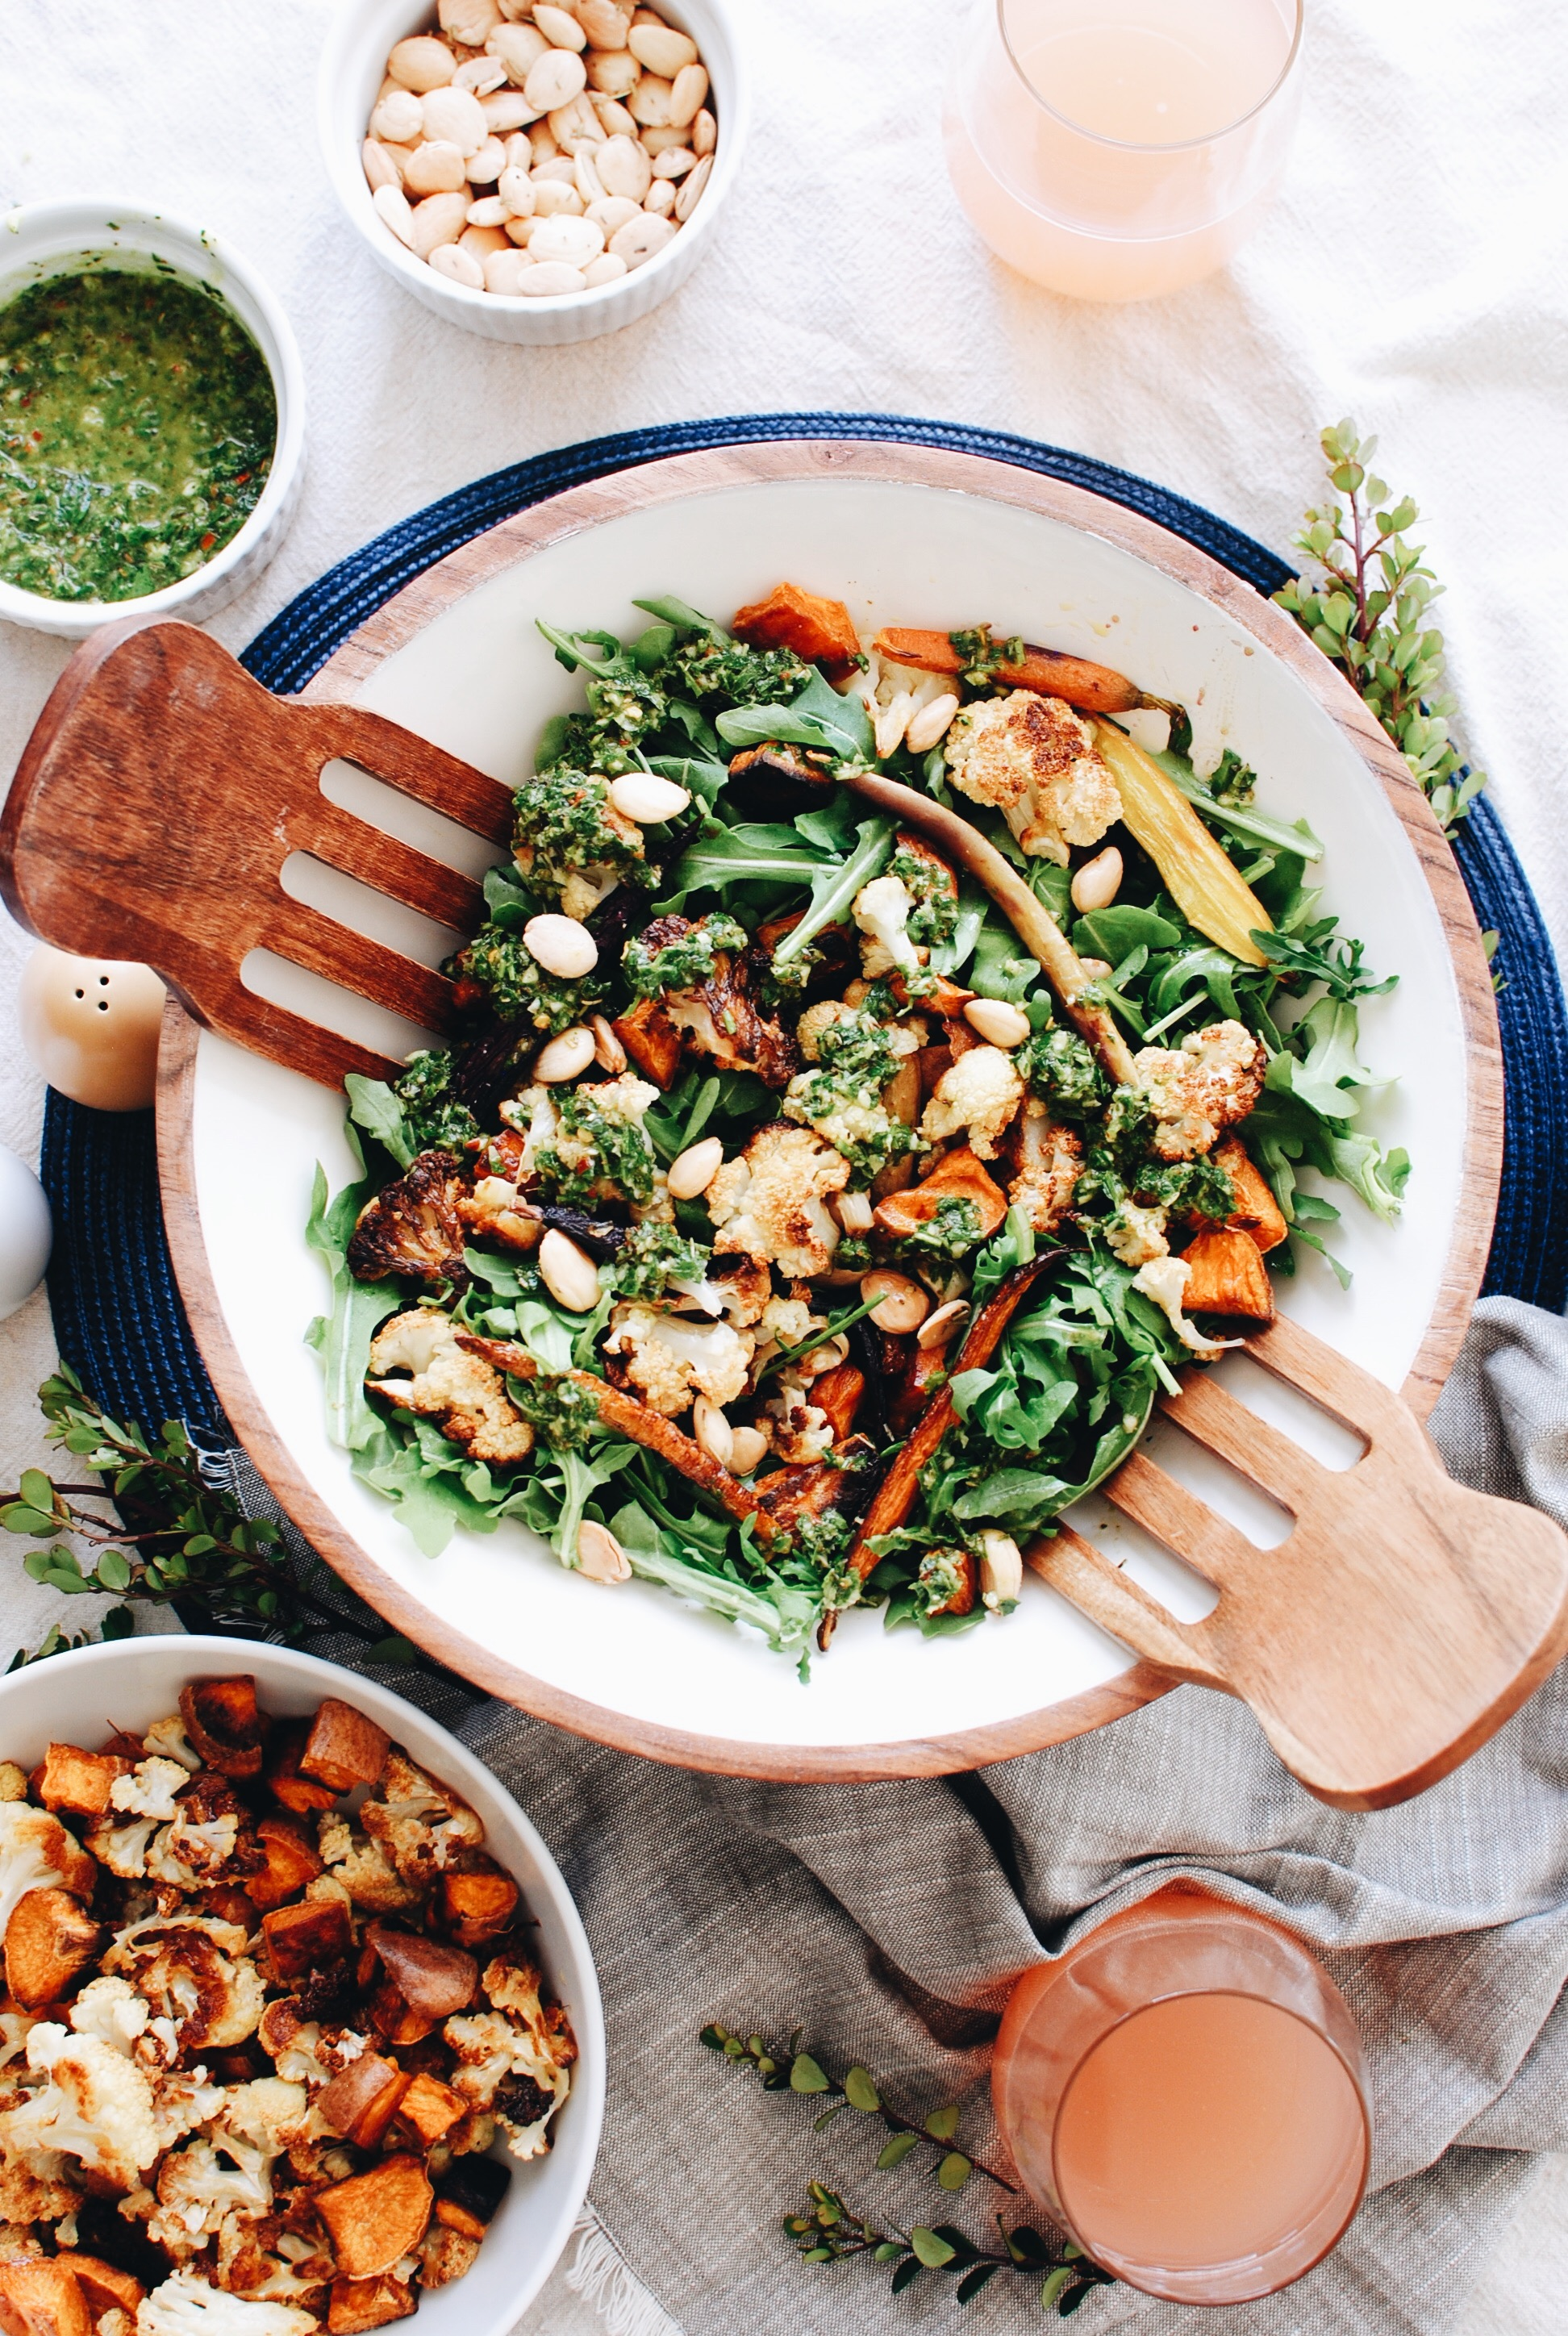 Roasted Veggie Salad with Arugula, Marcona Almonds and Chimichurri / Bev Cooks